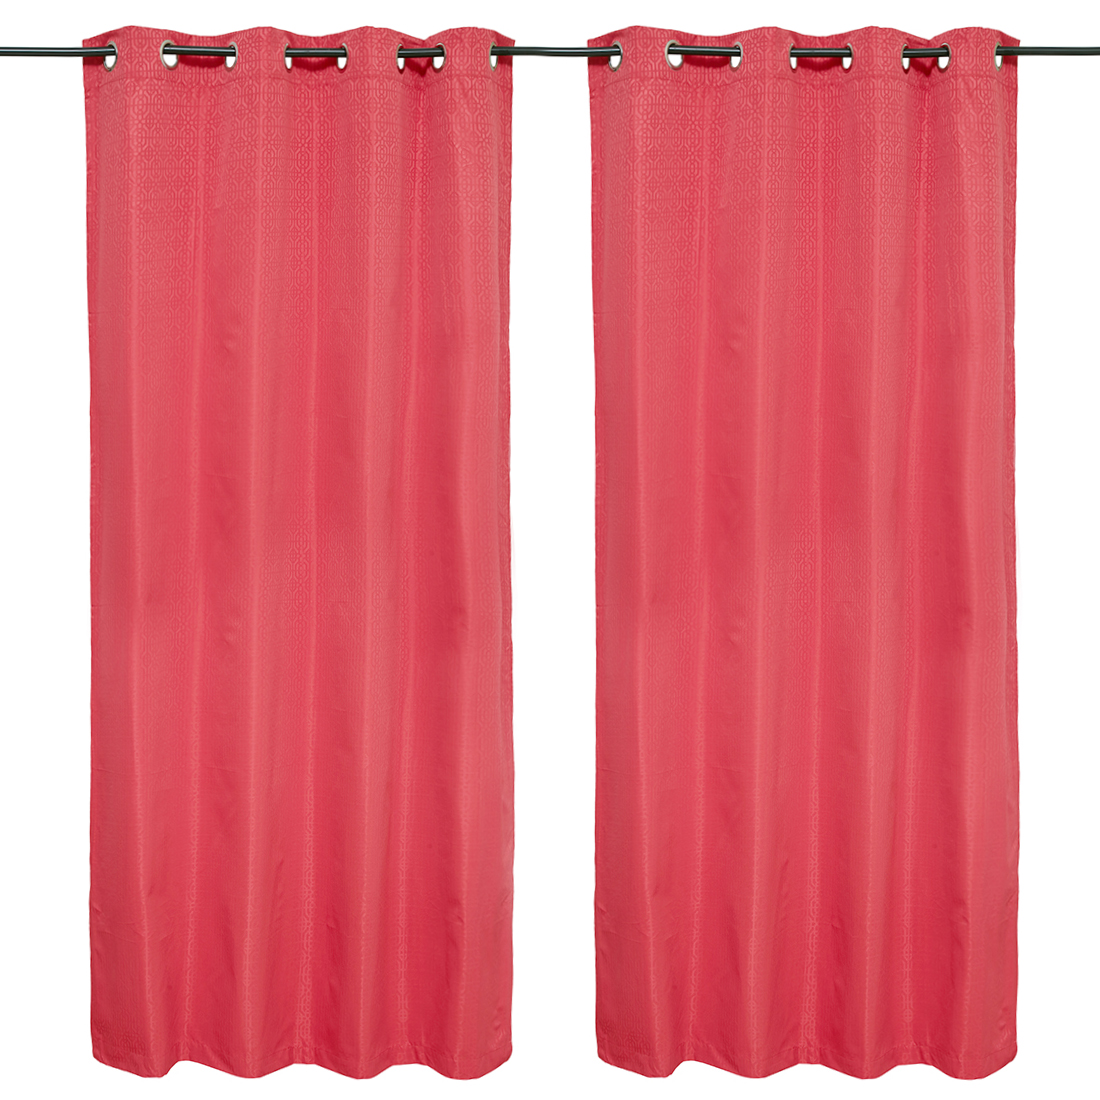 Emilia Jacquard set of 2 Polyester Door Curtains in Red Colour by Living Essence